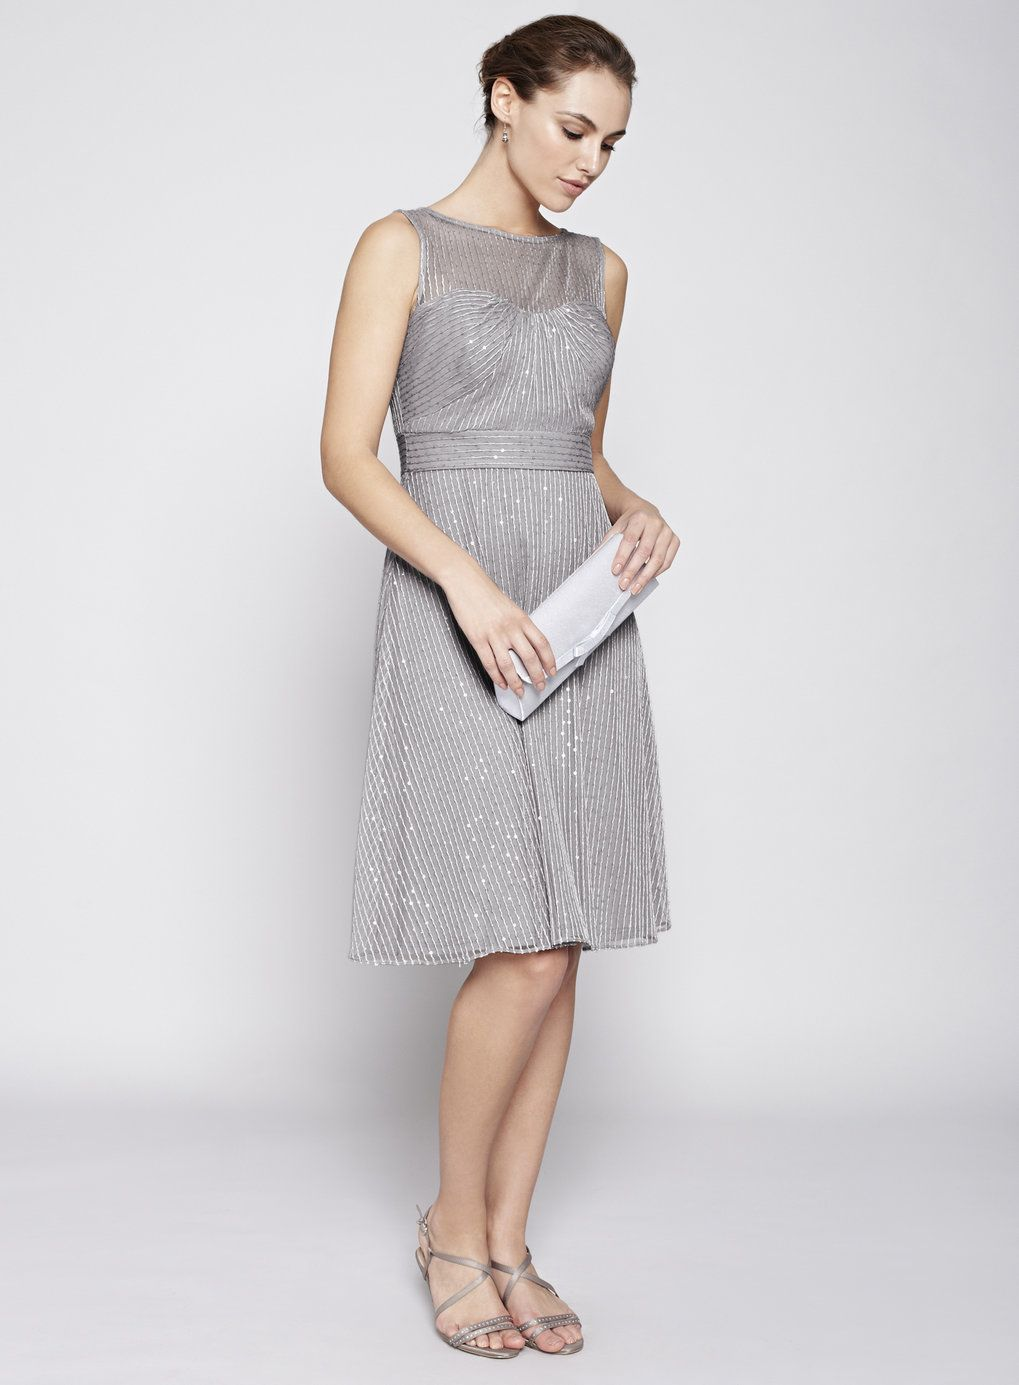 Silver bridesmaid dresses nice 1 12 silver bridesmaid dresses explore silver bridesmaid dresses bridesmaids and more ombrellifo Images